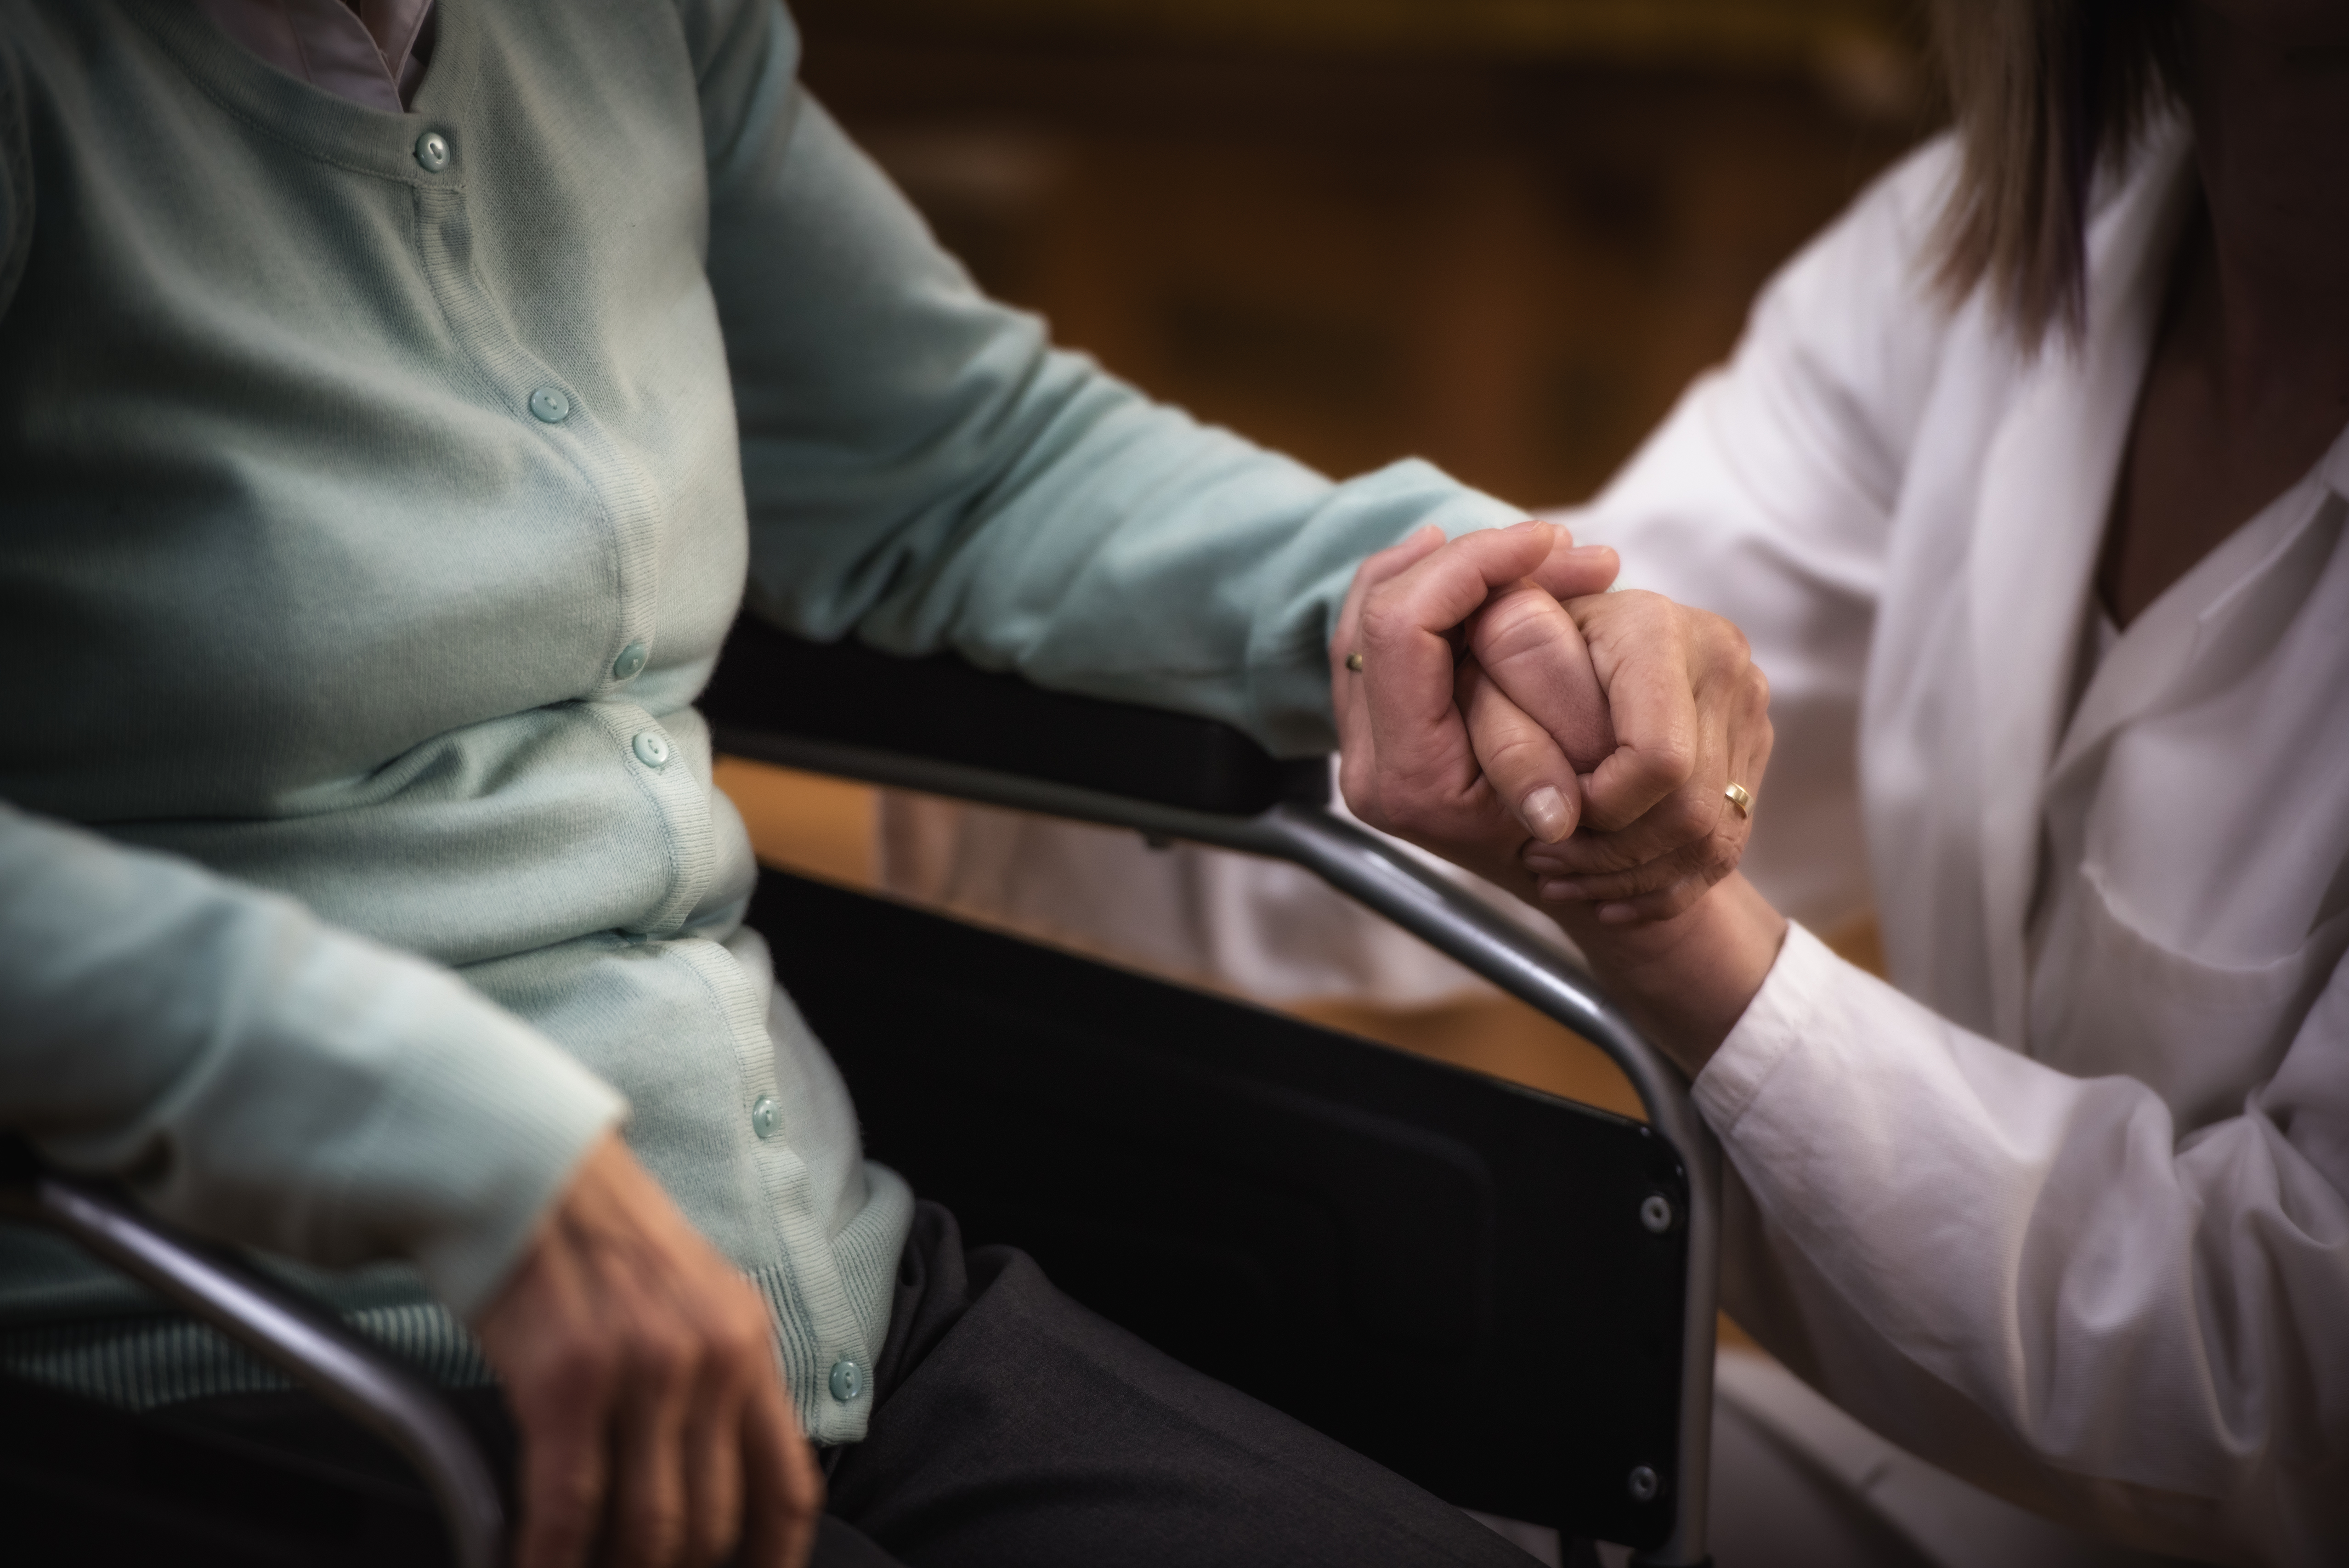 AARP ranks Florida fourth-worst state for long-term elderly care